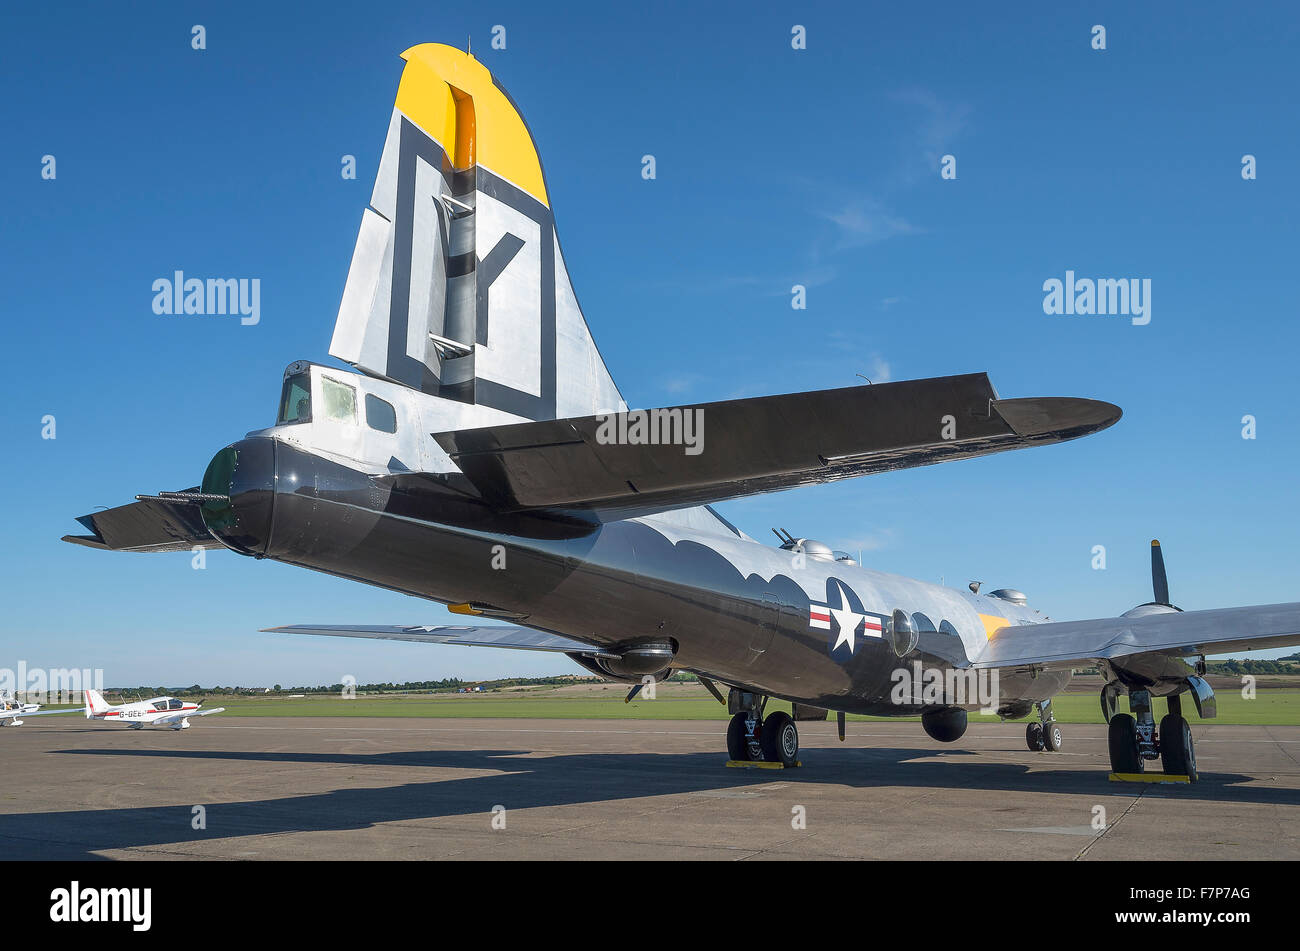 Tail section of an American B29 bomber from WWII at Duxford - Stock Image